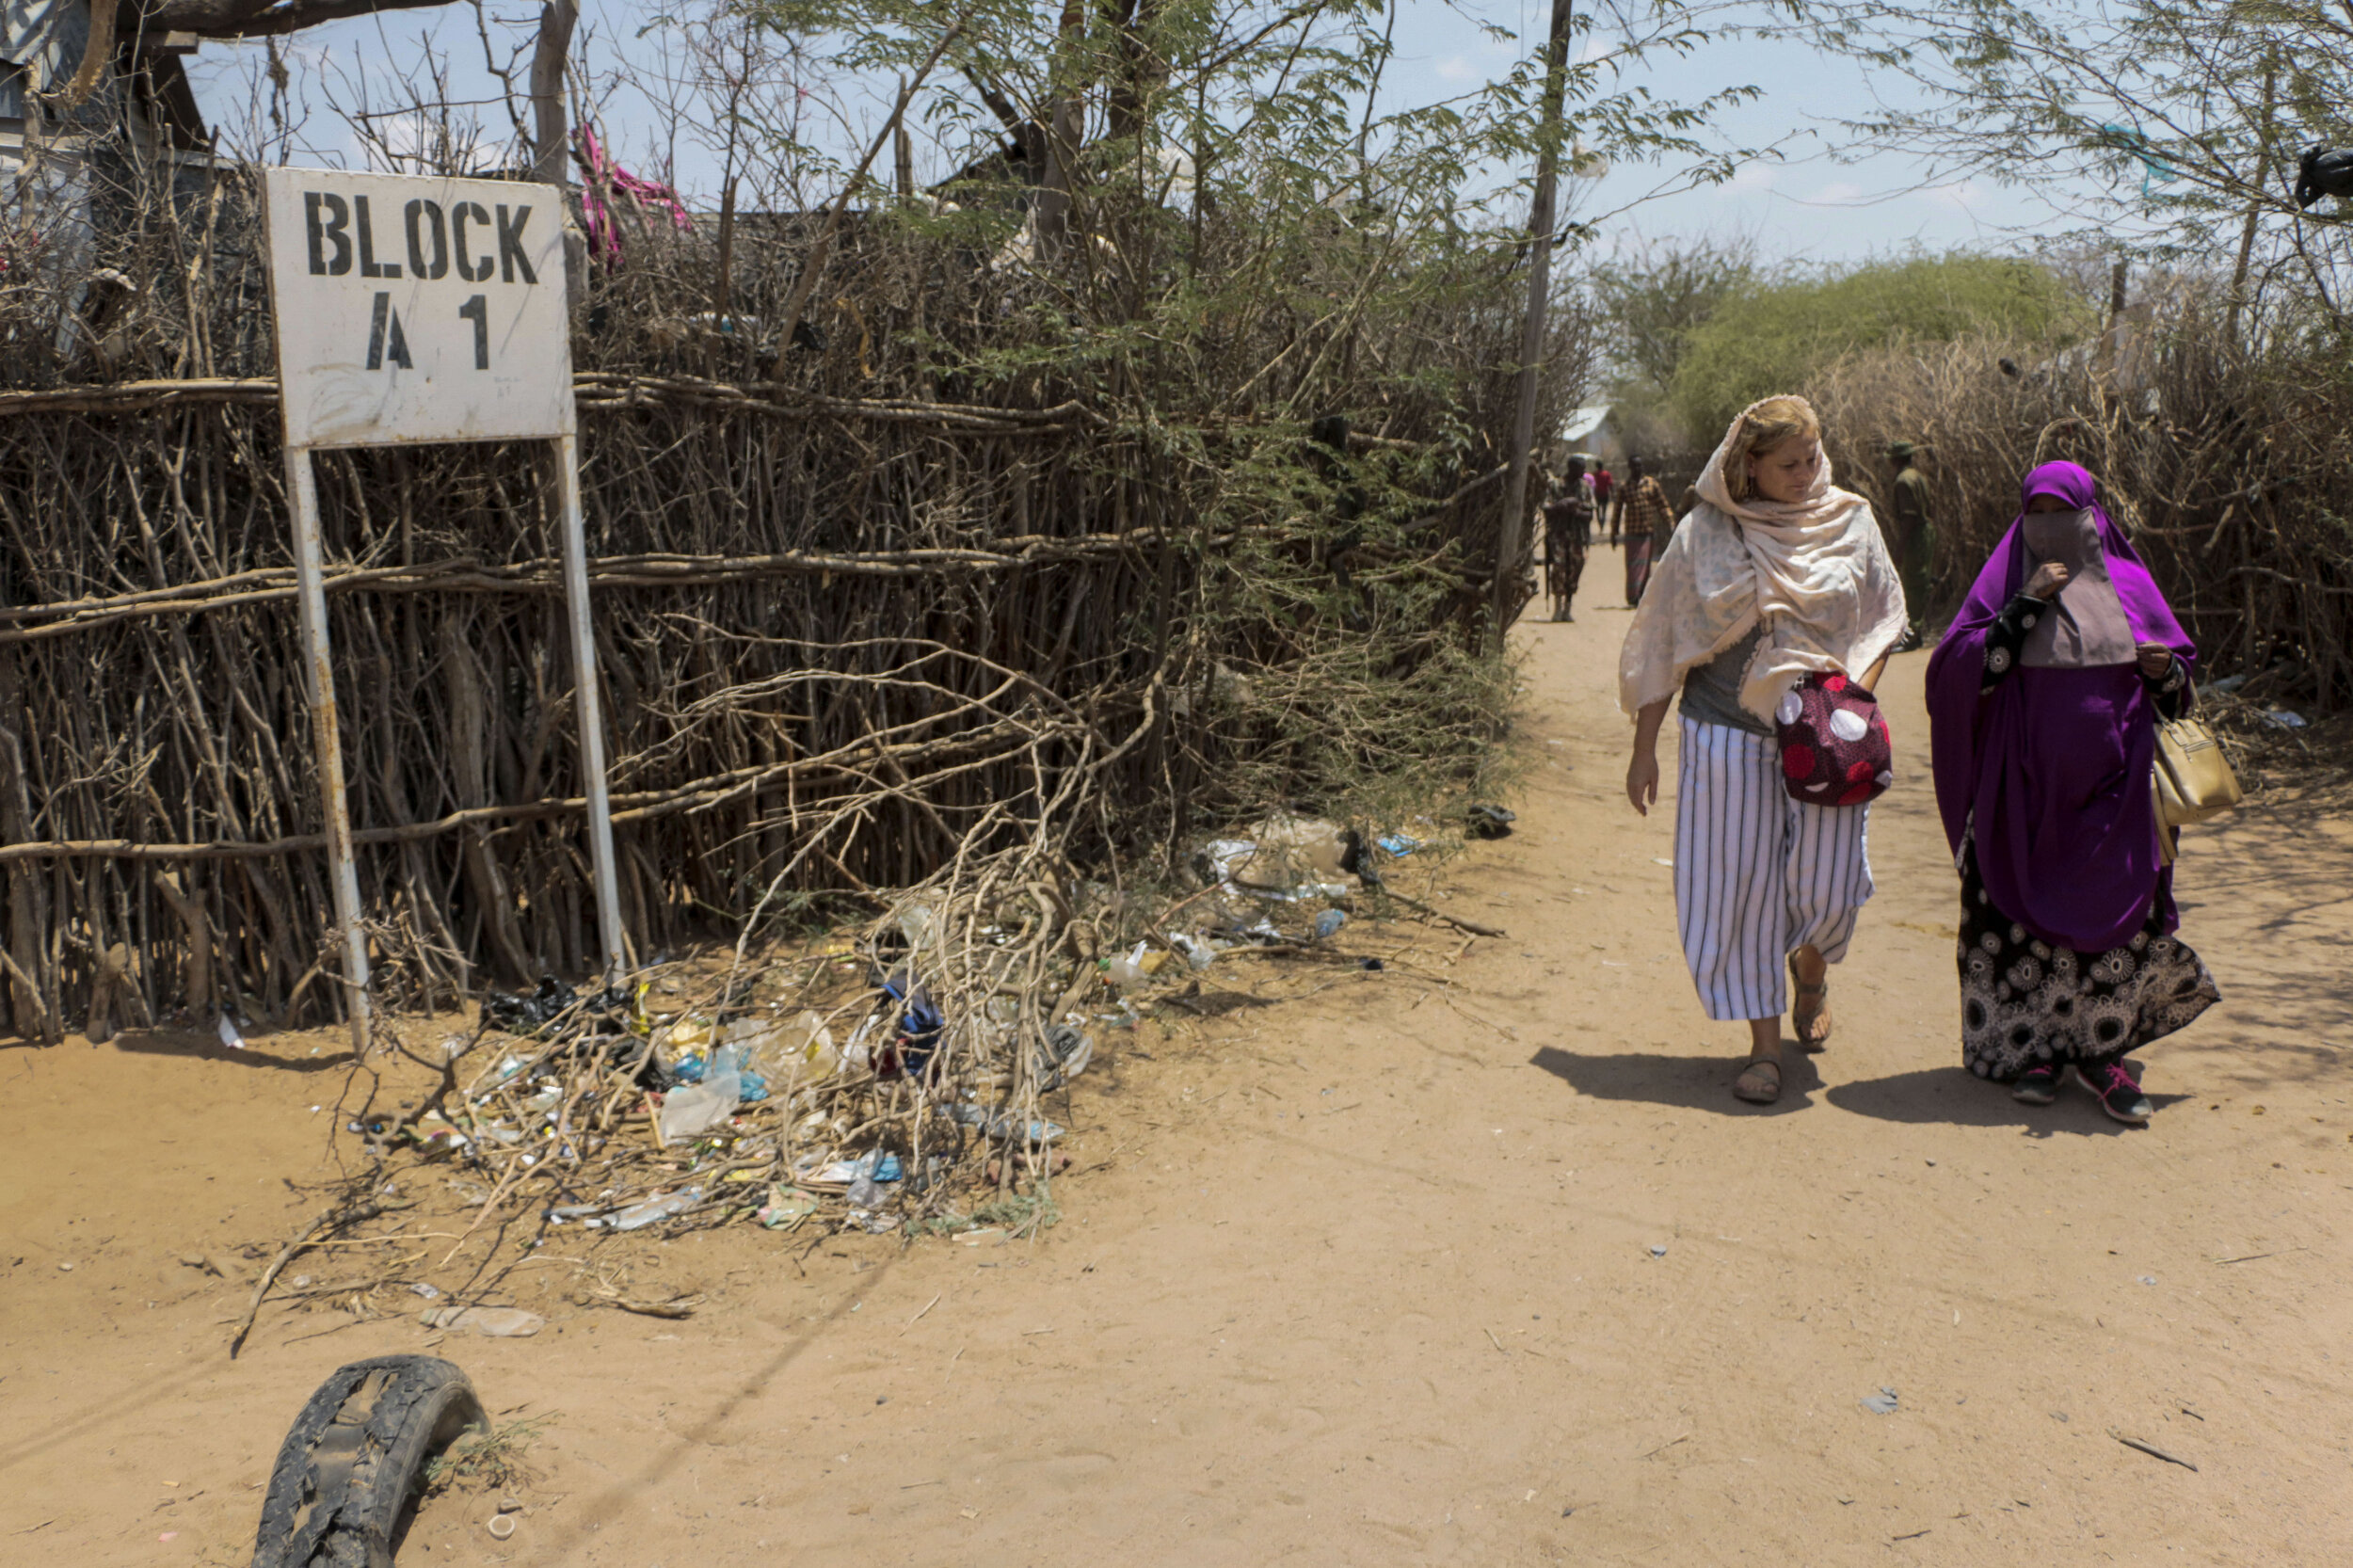 Jessica Rohloff, left, and Hamdi Kosar walk through the A1 Block Aug. 19 where Kosar was born at the Dagahaley Refugee Camp in Dadaab, Kenya. The pair visited Kosar's former home that now houses a new family.